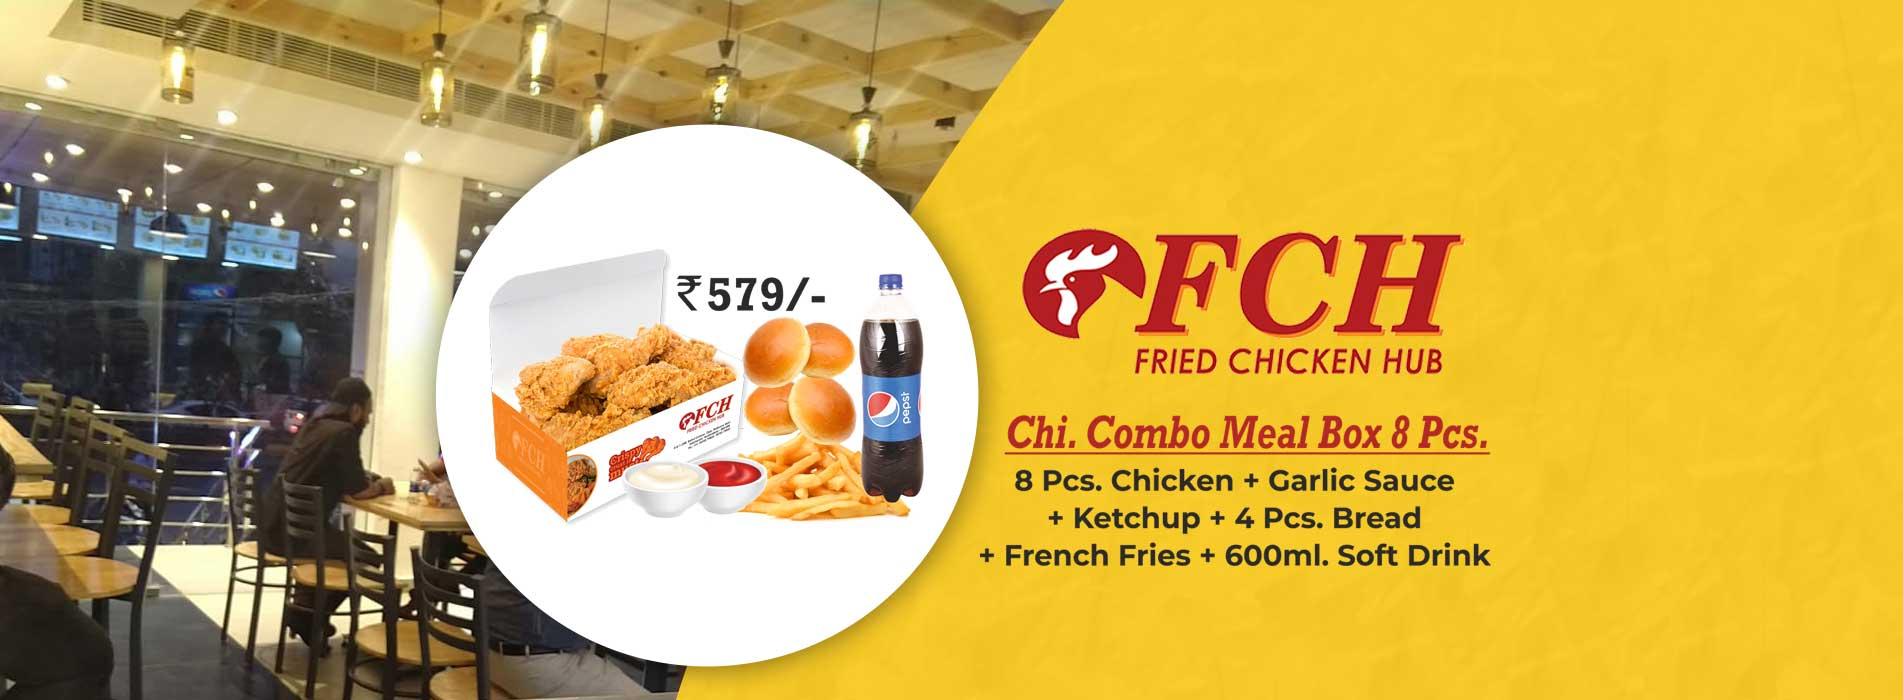 Fried Chicken Hub Toli Chowki